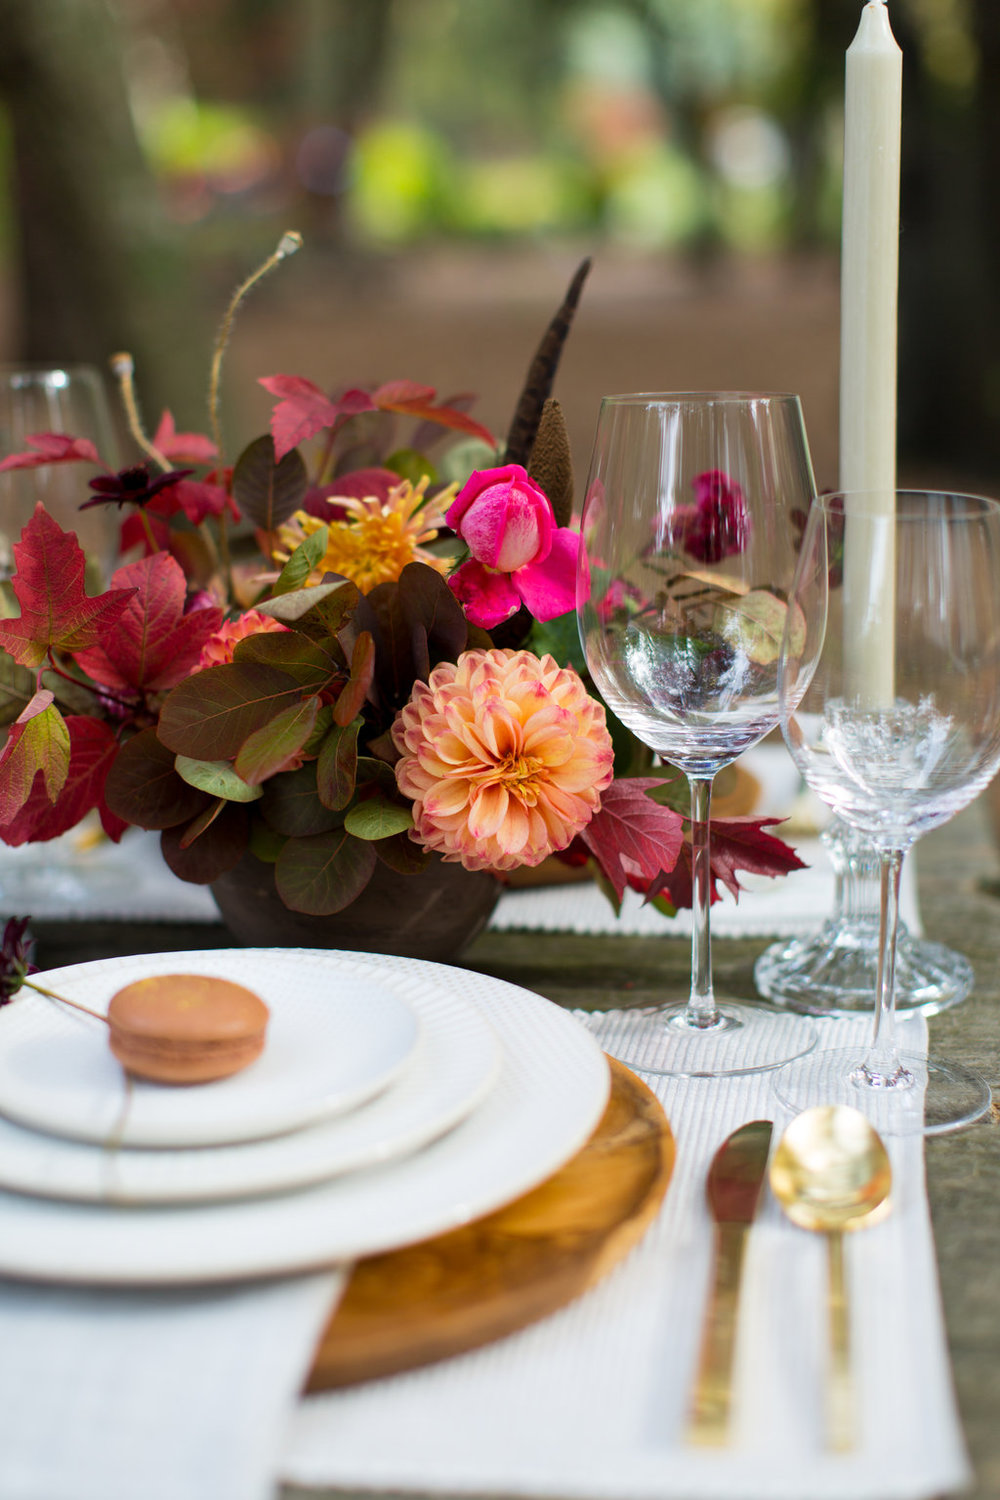 ThanksgivingStyledShoot-137.jpg